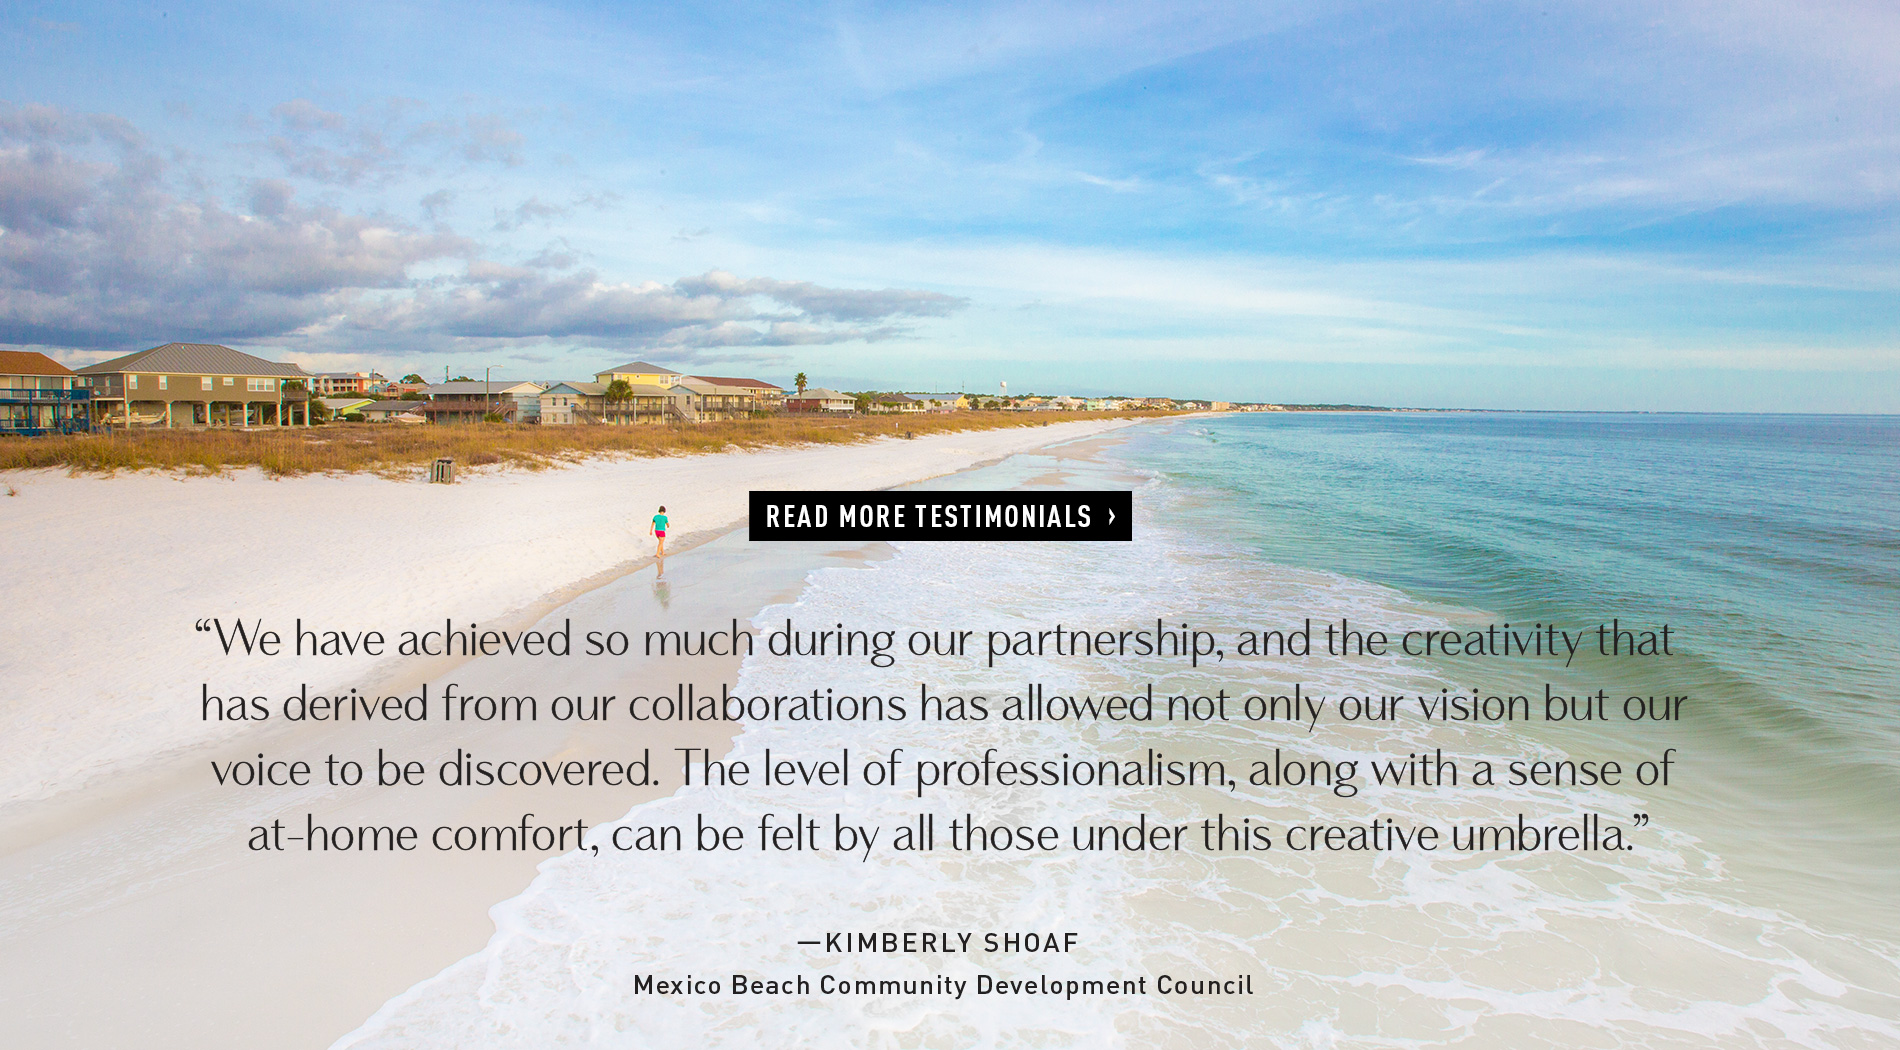 Kimberly Shoaf, Mexico Beach Community Development Council - VIE Testimonial